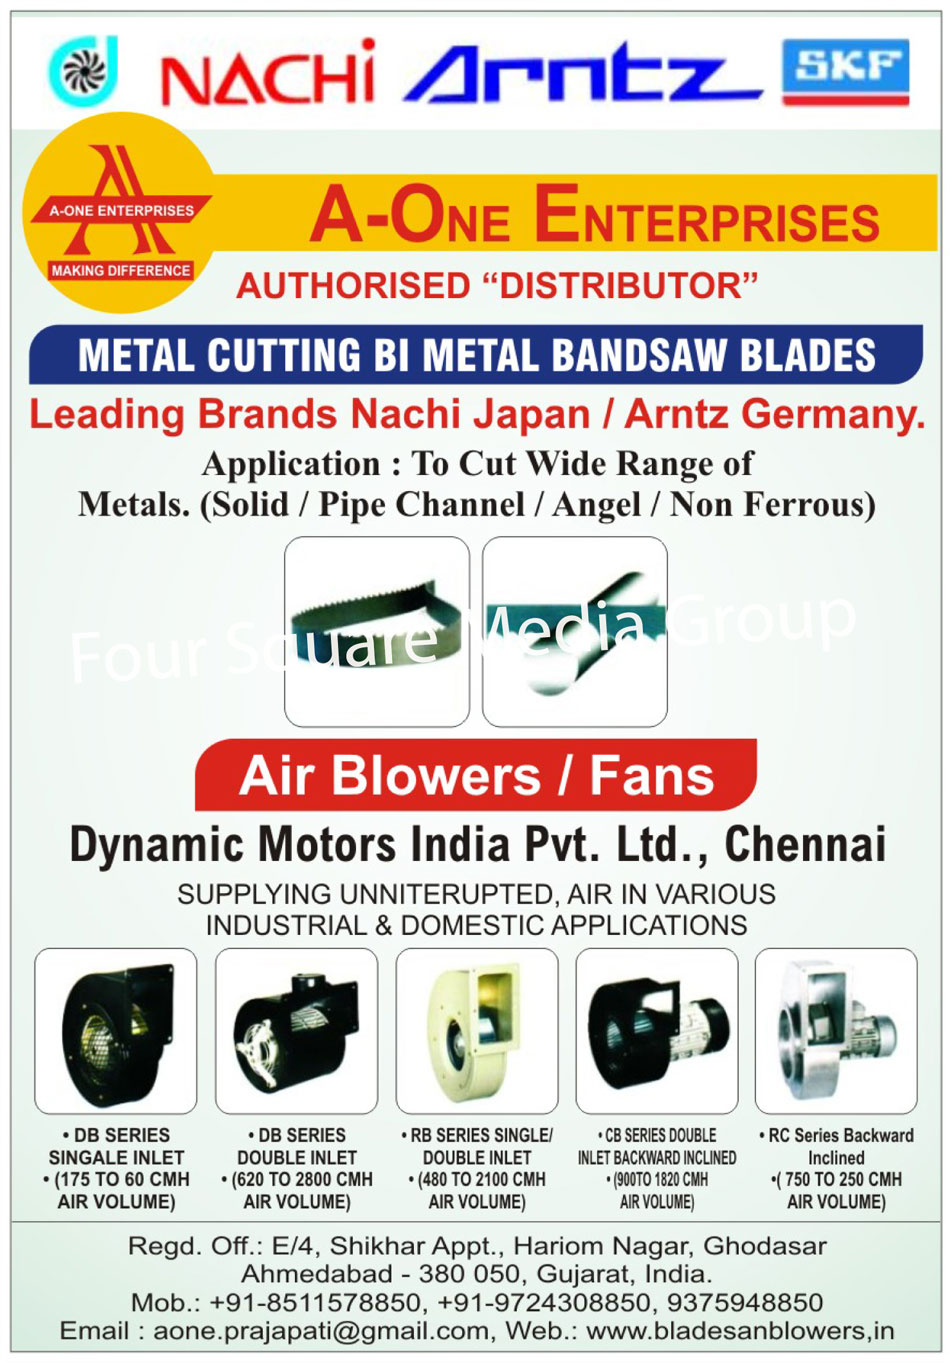 Metal Cutting BI Metal Bandsaw Blades, Radial Centrifugal Fan, Air Blowers, Metal Saw Blade, Band Saw Blades